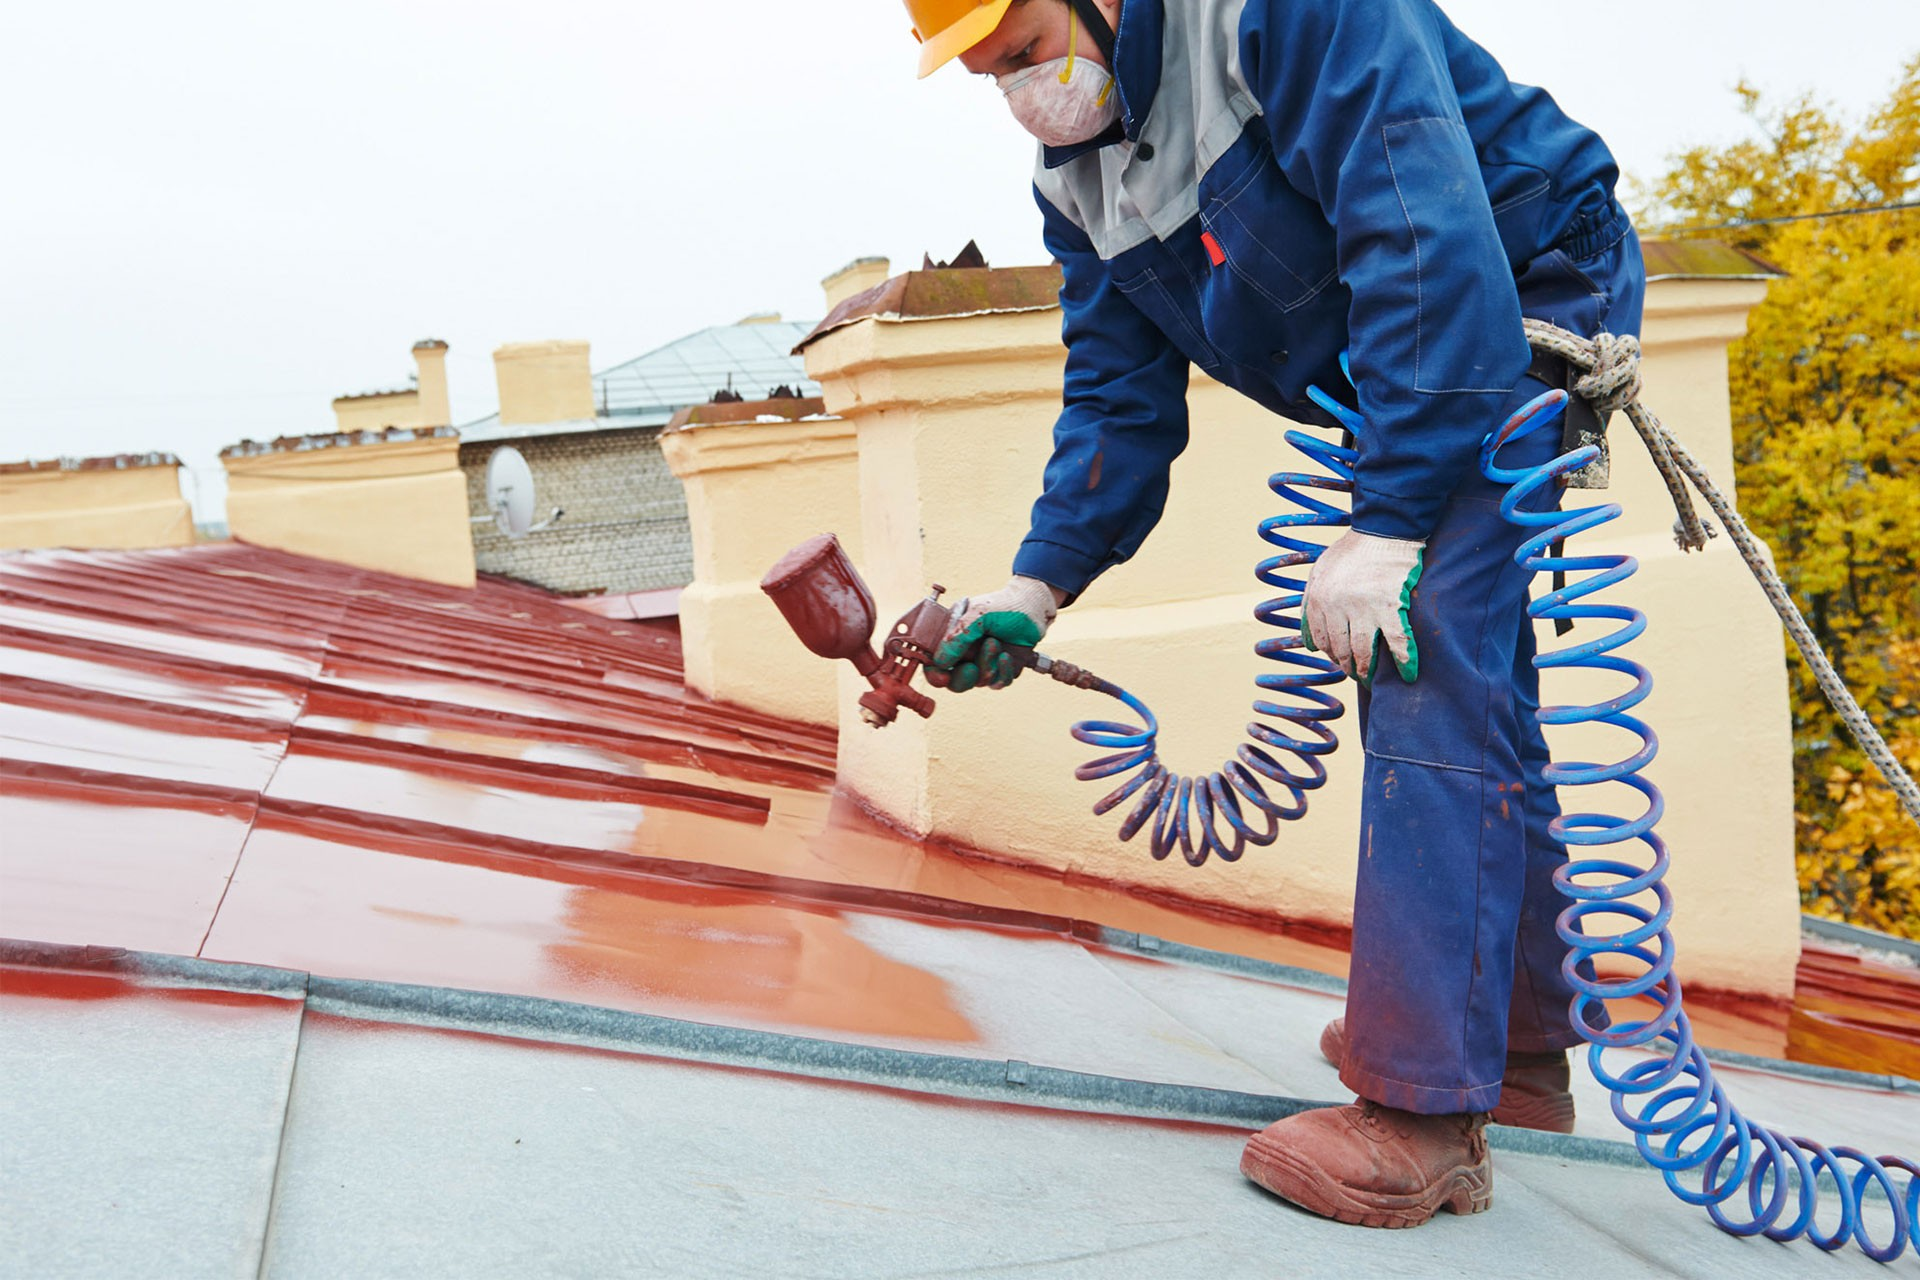 Humble-League City TX Professional Painting Contractors-We offer Residential & Commercial Painting, Interior Painting, Exterior Painting, Primer Painting, Industrial Painting, Professional Painters, Institutional Painters, and more.